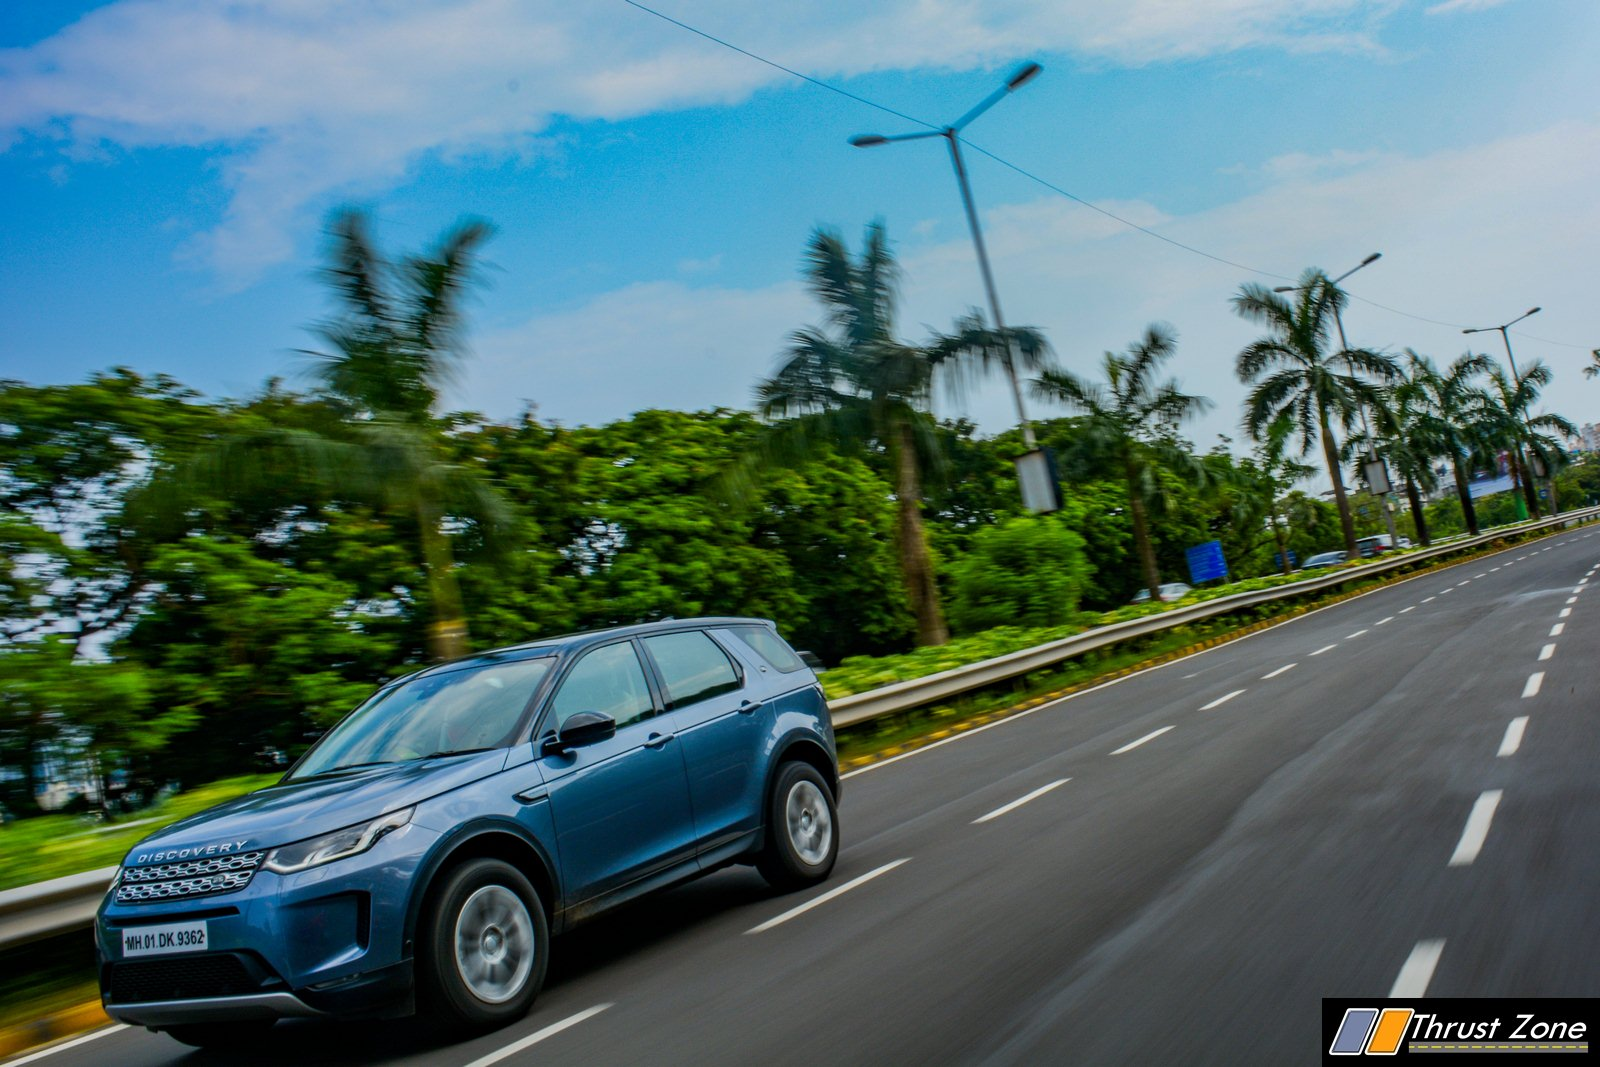 2020-Land-Rover-Discovery-Diesel-India-Review-21